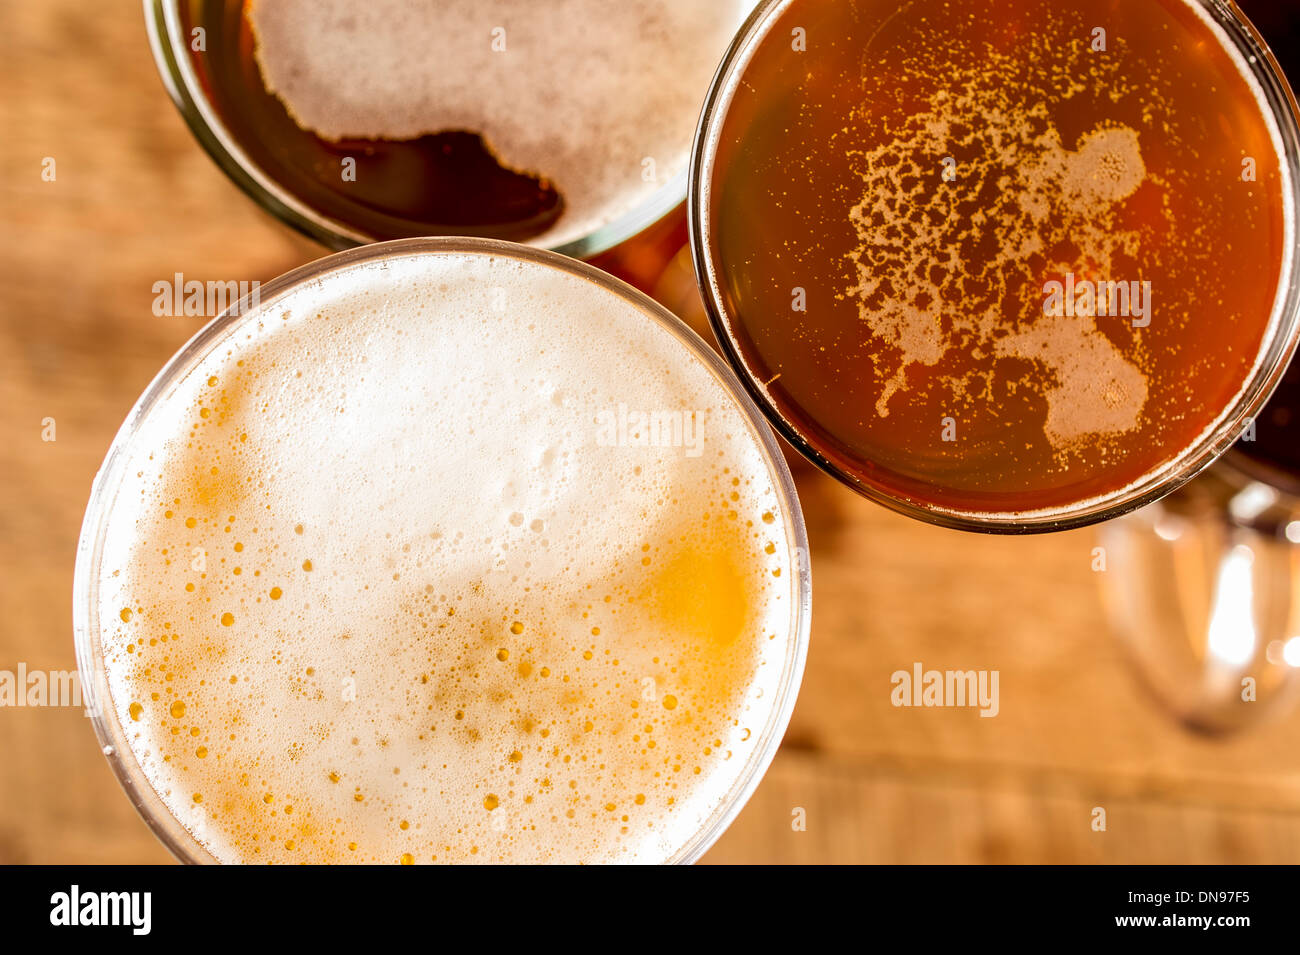 Pints of ale and beer in glasses on a table, UK - Stock Image